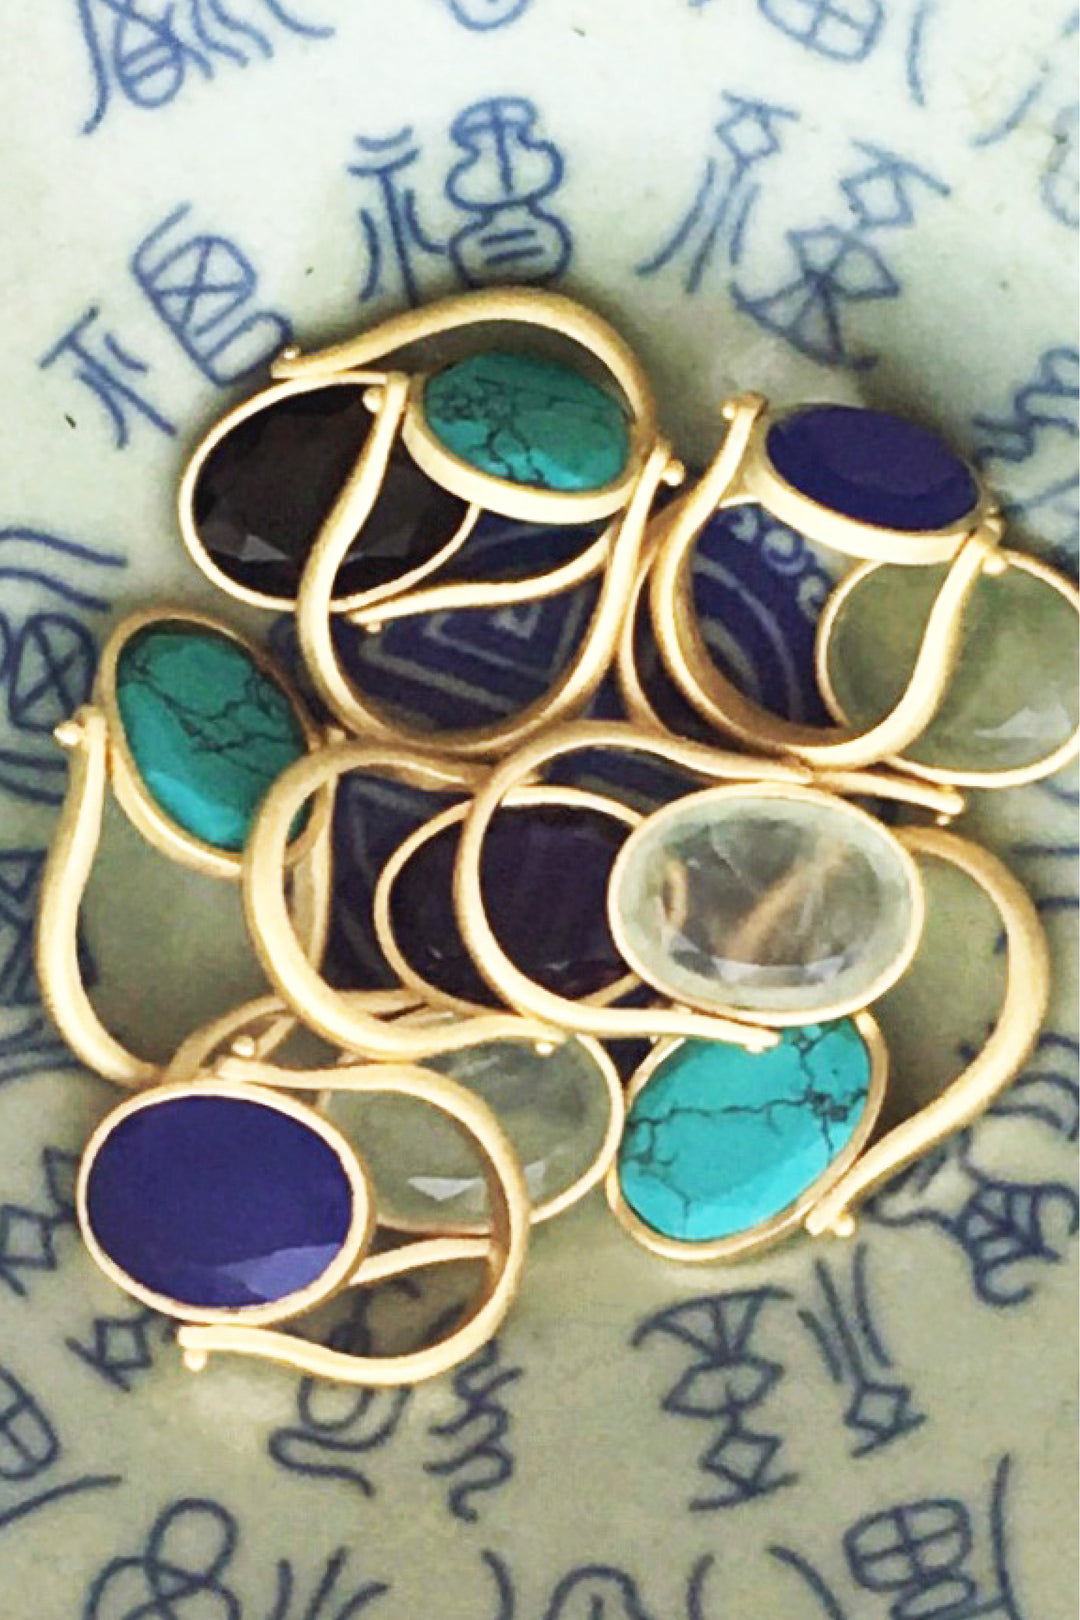 cocktail rings gold semi precious stones large